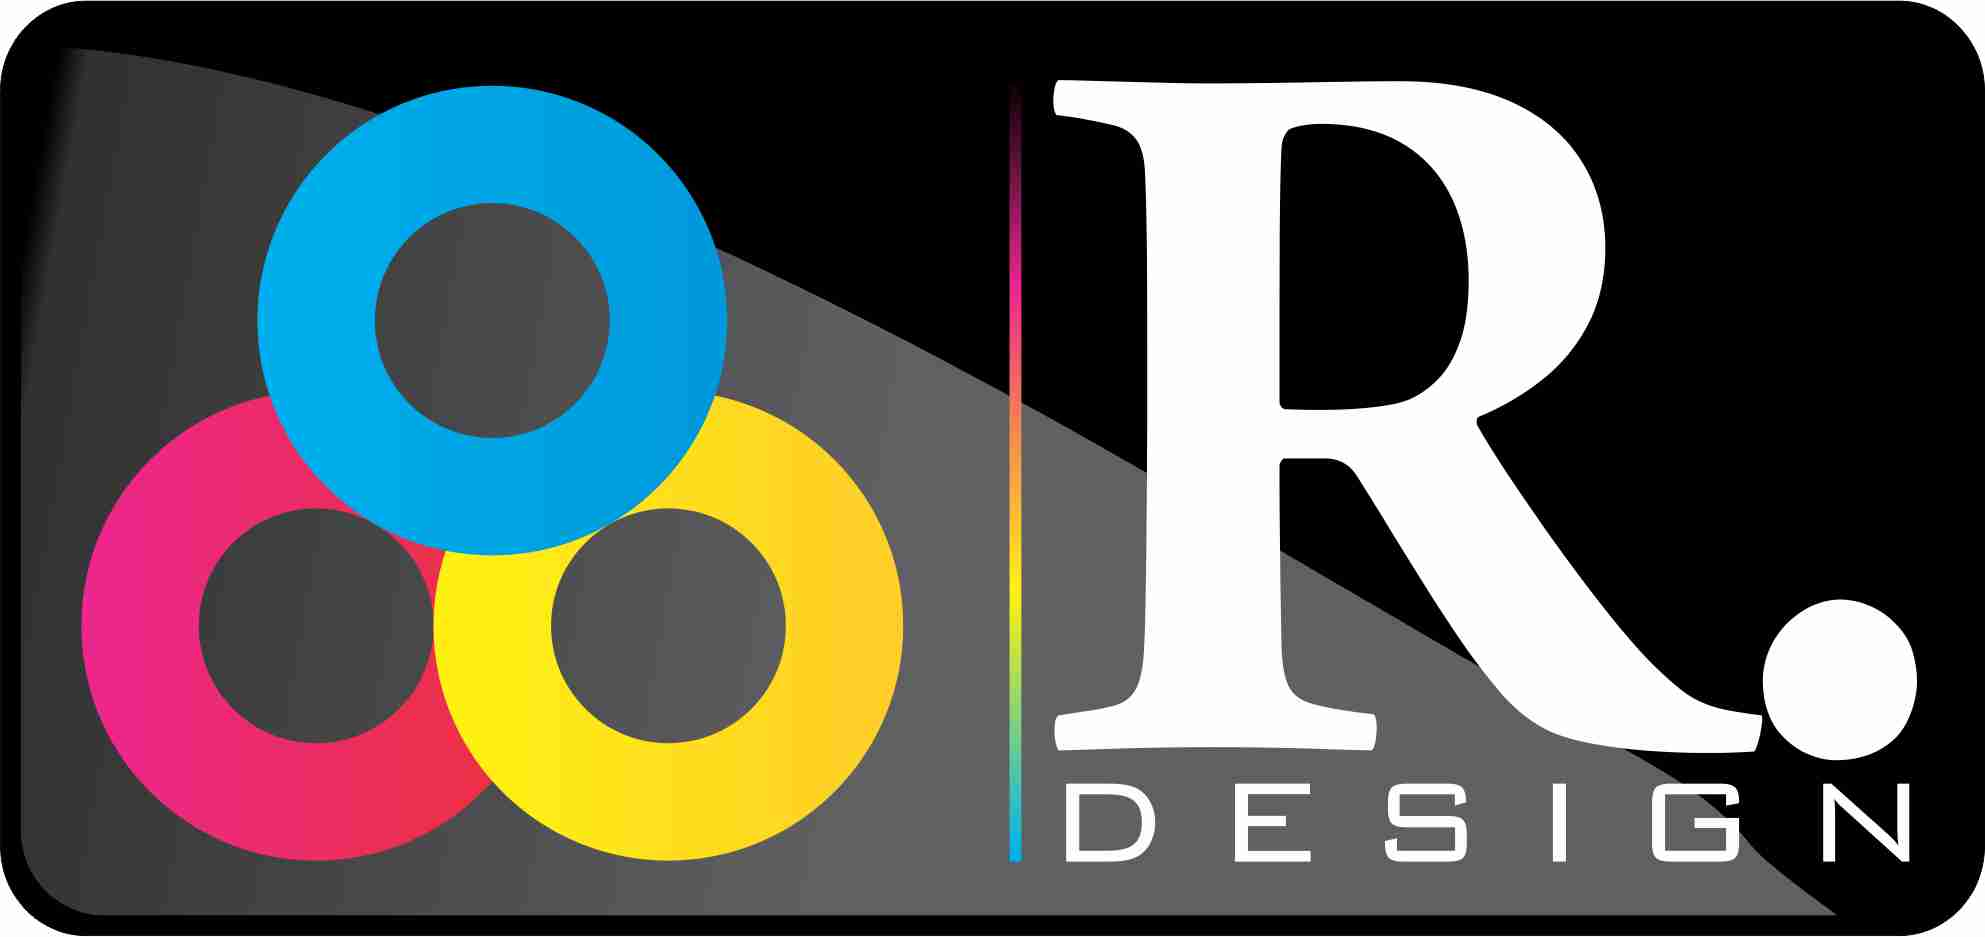 RDESIGN | Brands of the World™ | Download vector logos and